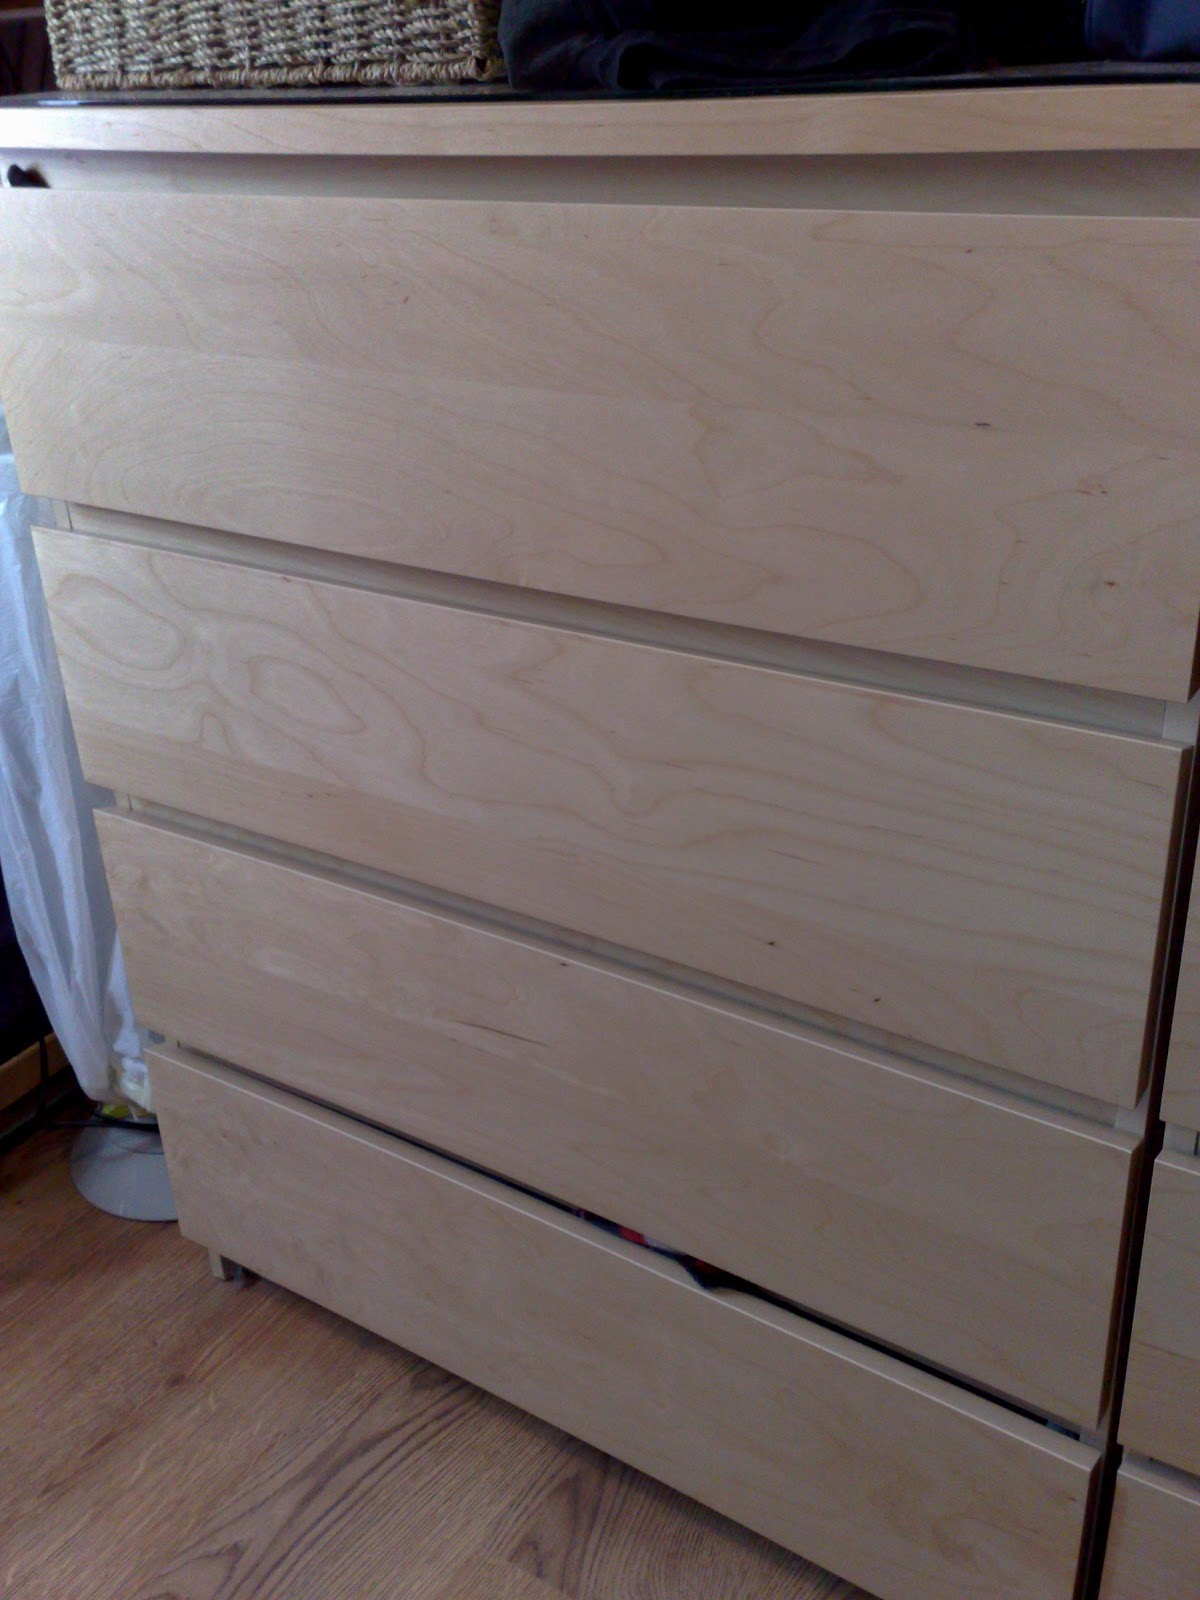 wolfies blogs ikea hack 4 malm chest of drawers. Black Bedroom Furniture Sets. Home Design Ideas